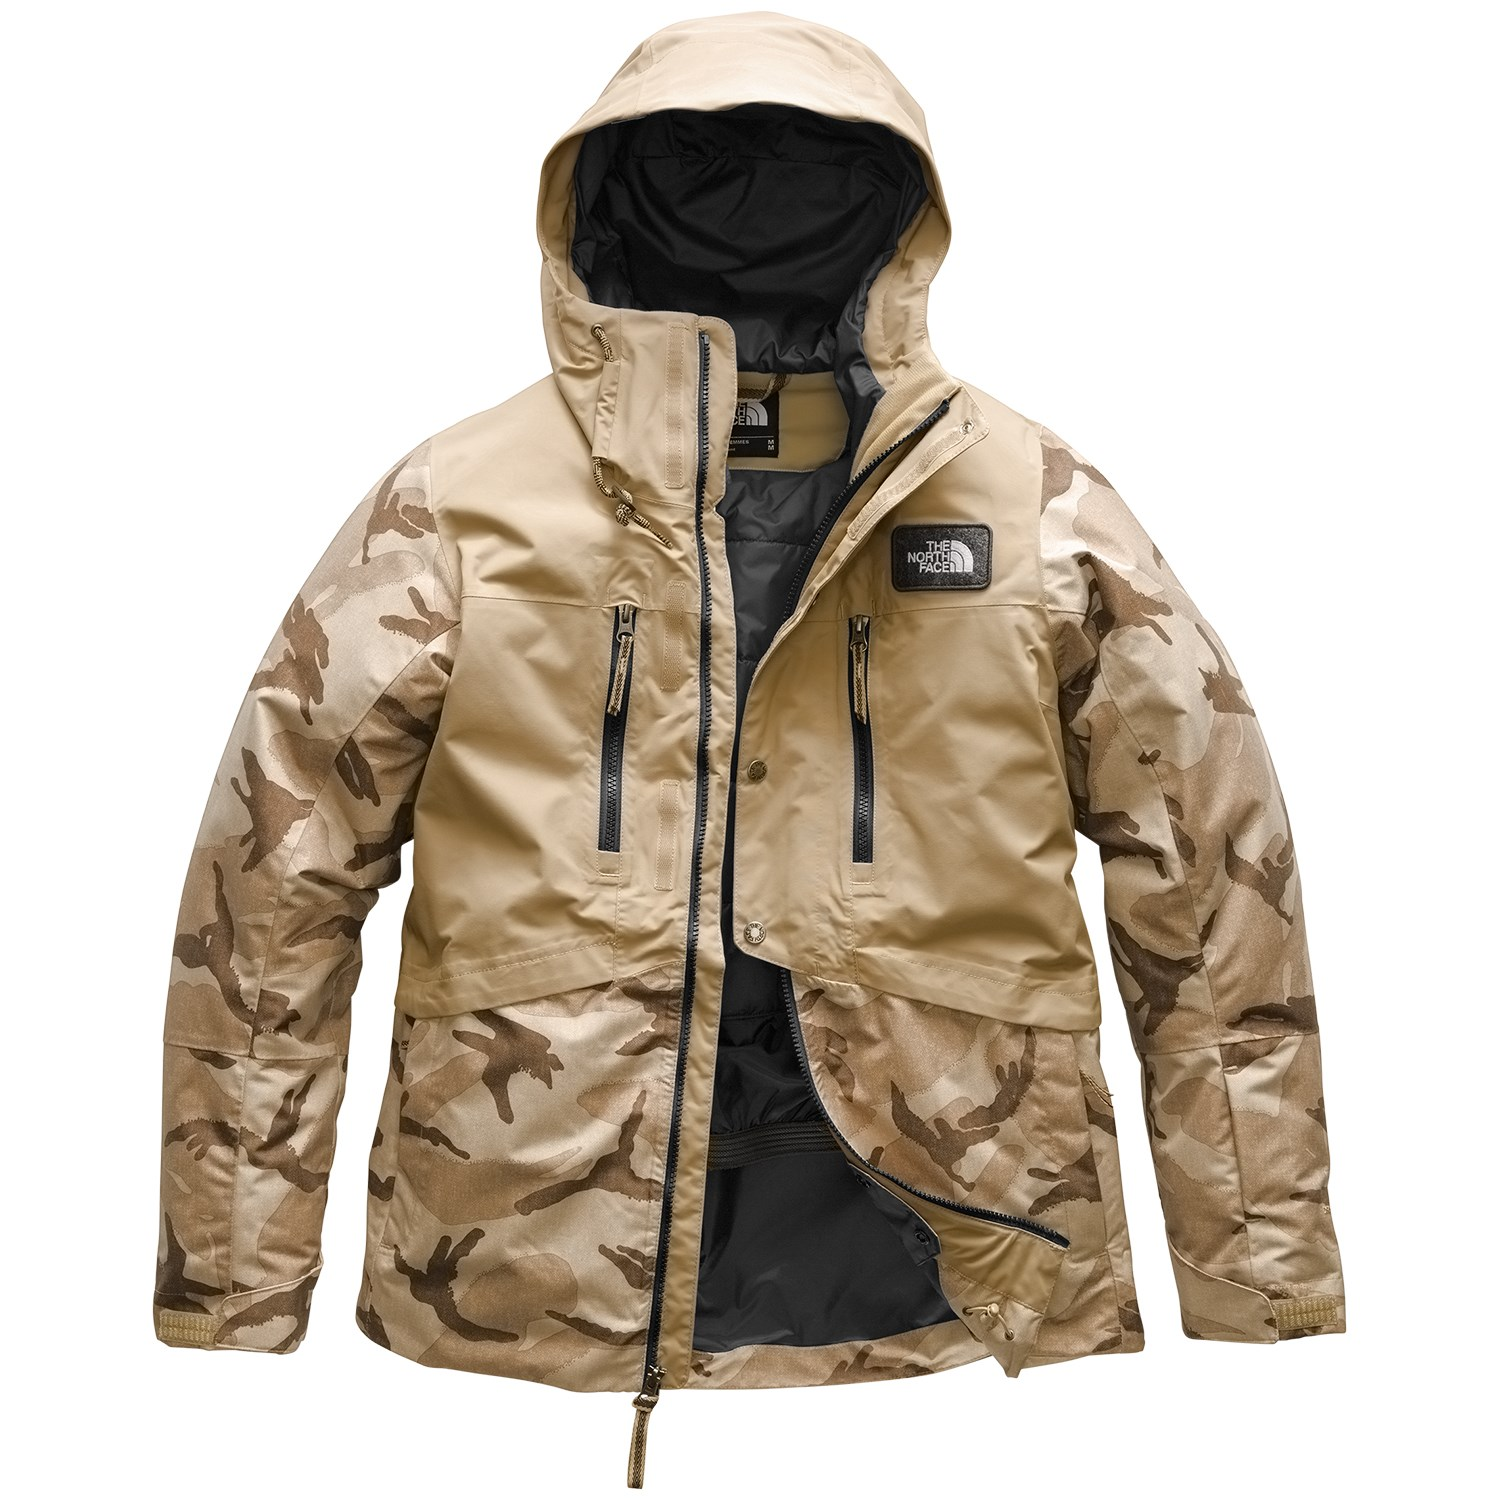 9da8a9c3f The North Face Superlu Jacket - Women's